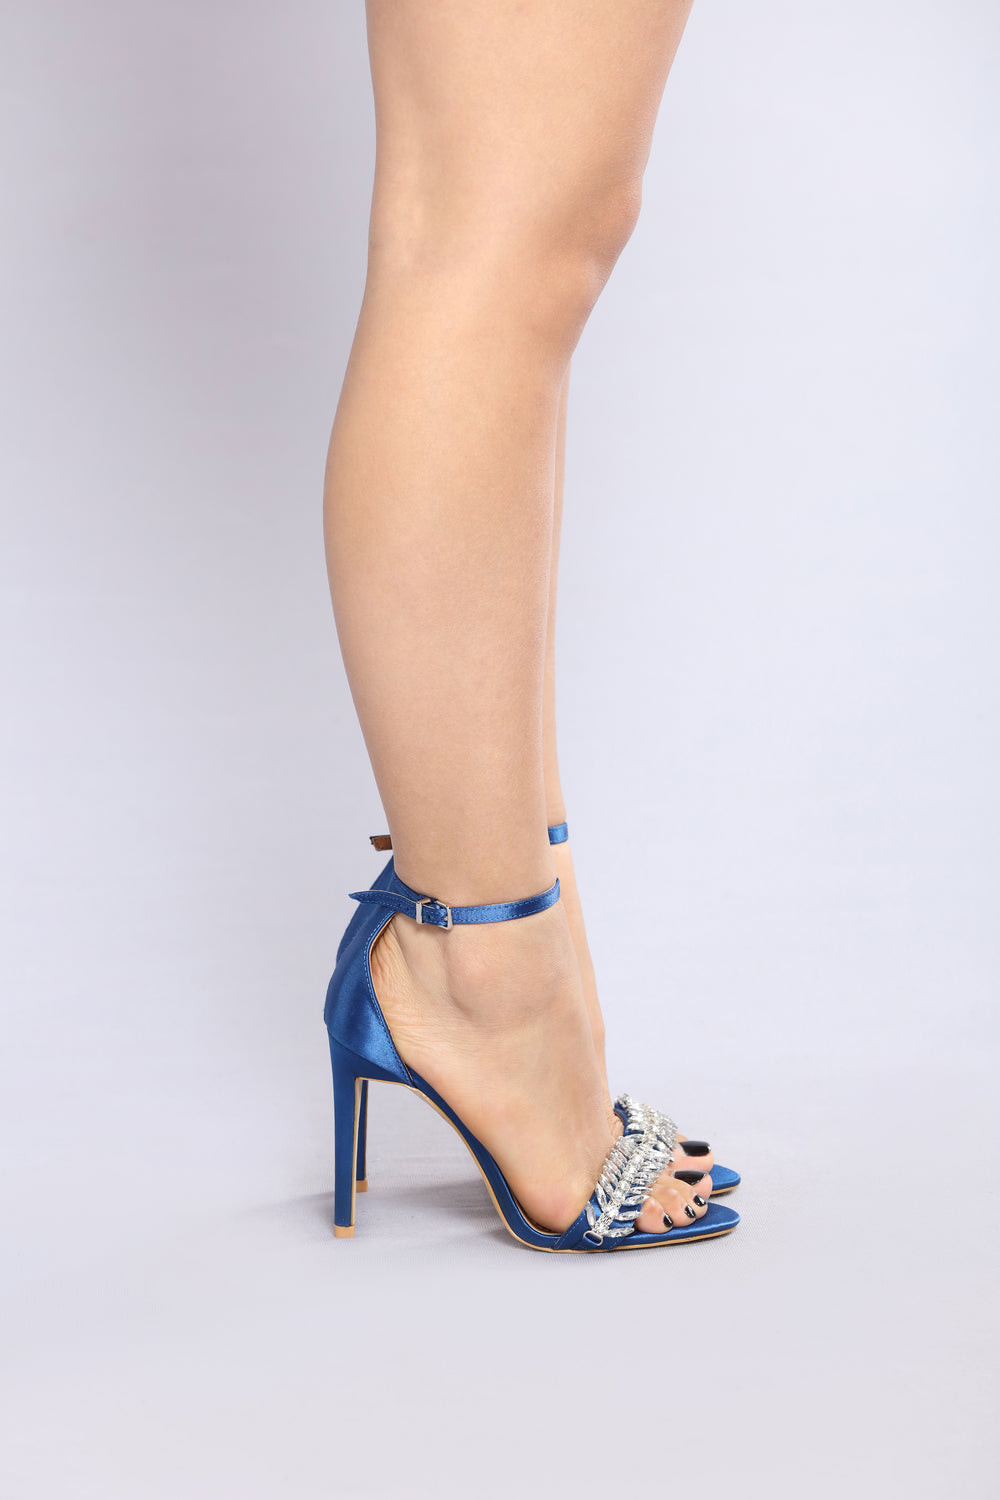 Christal Satin Heel - Navy